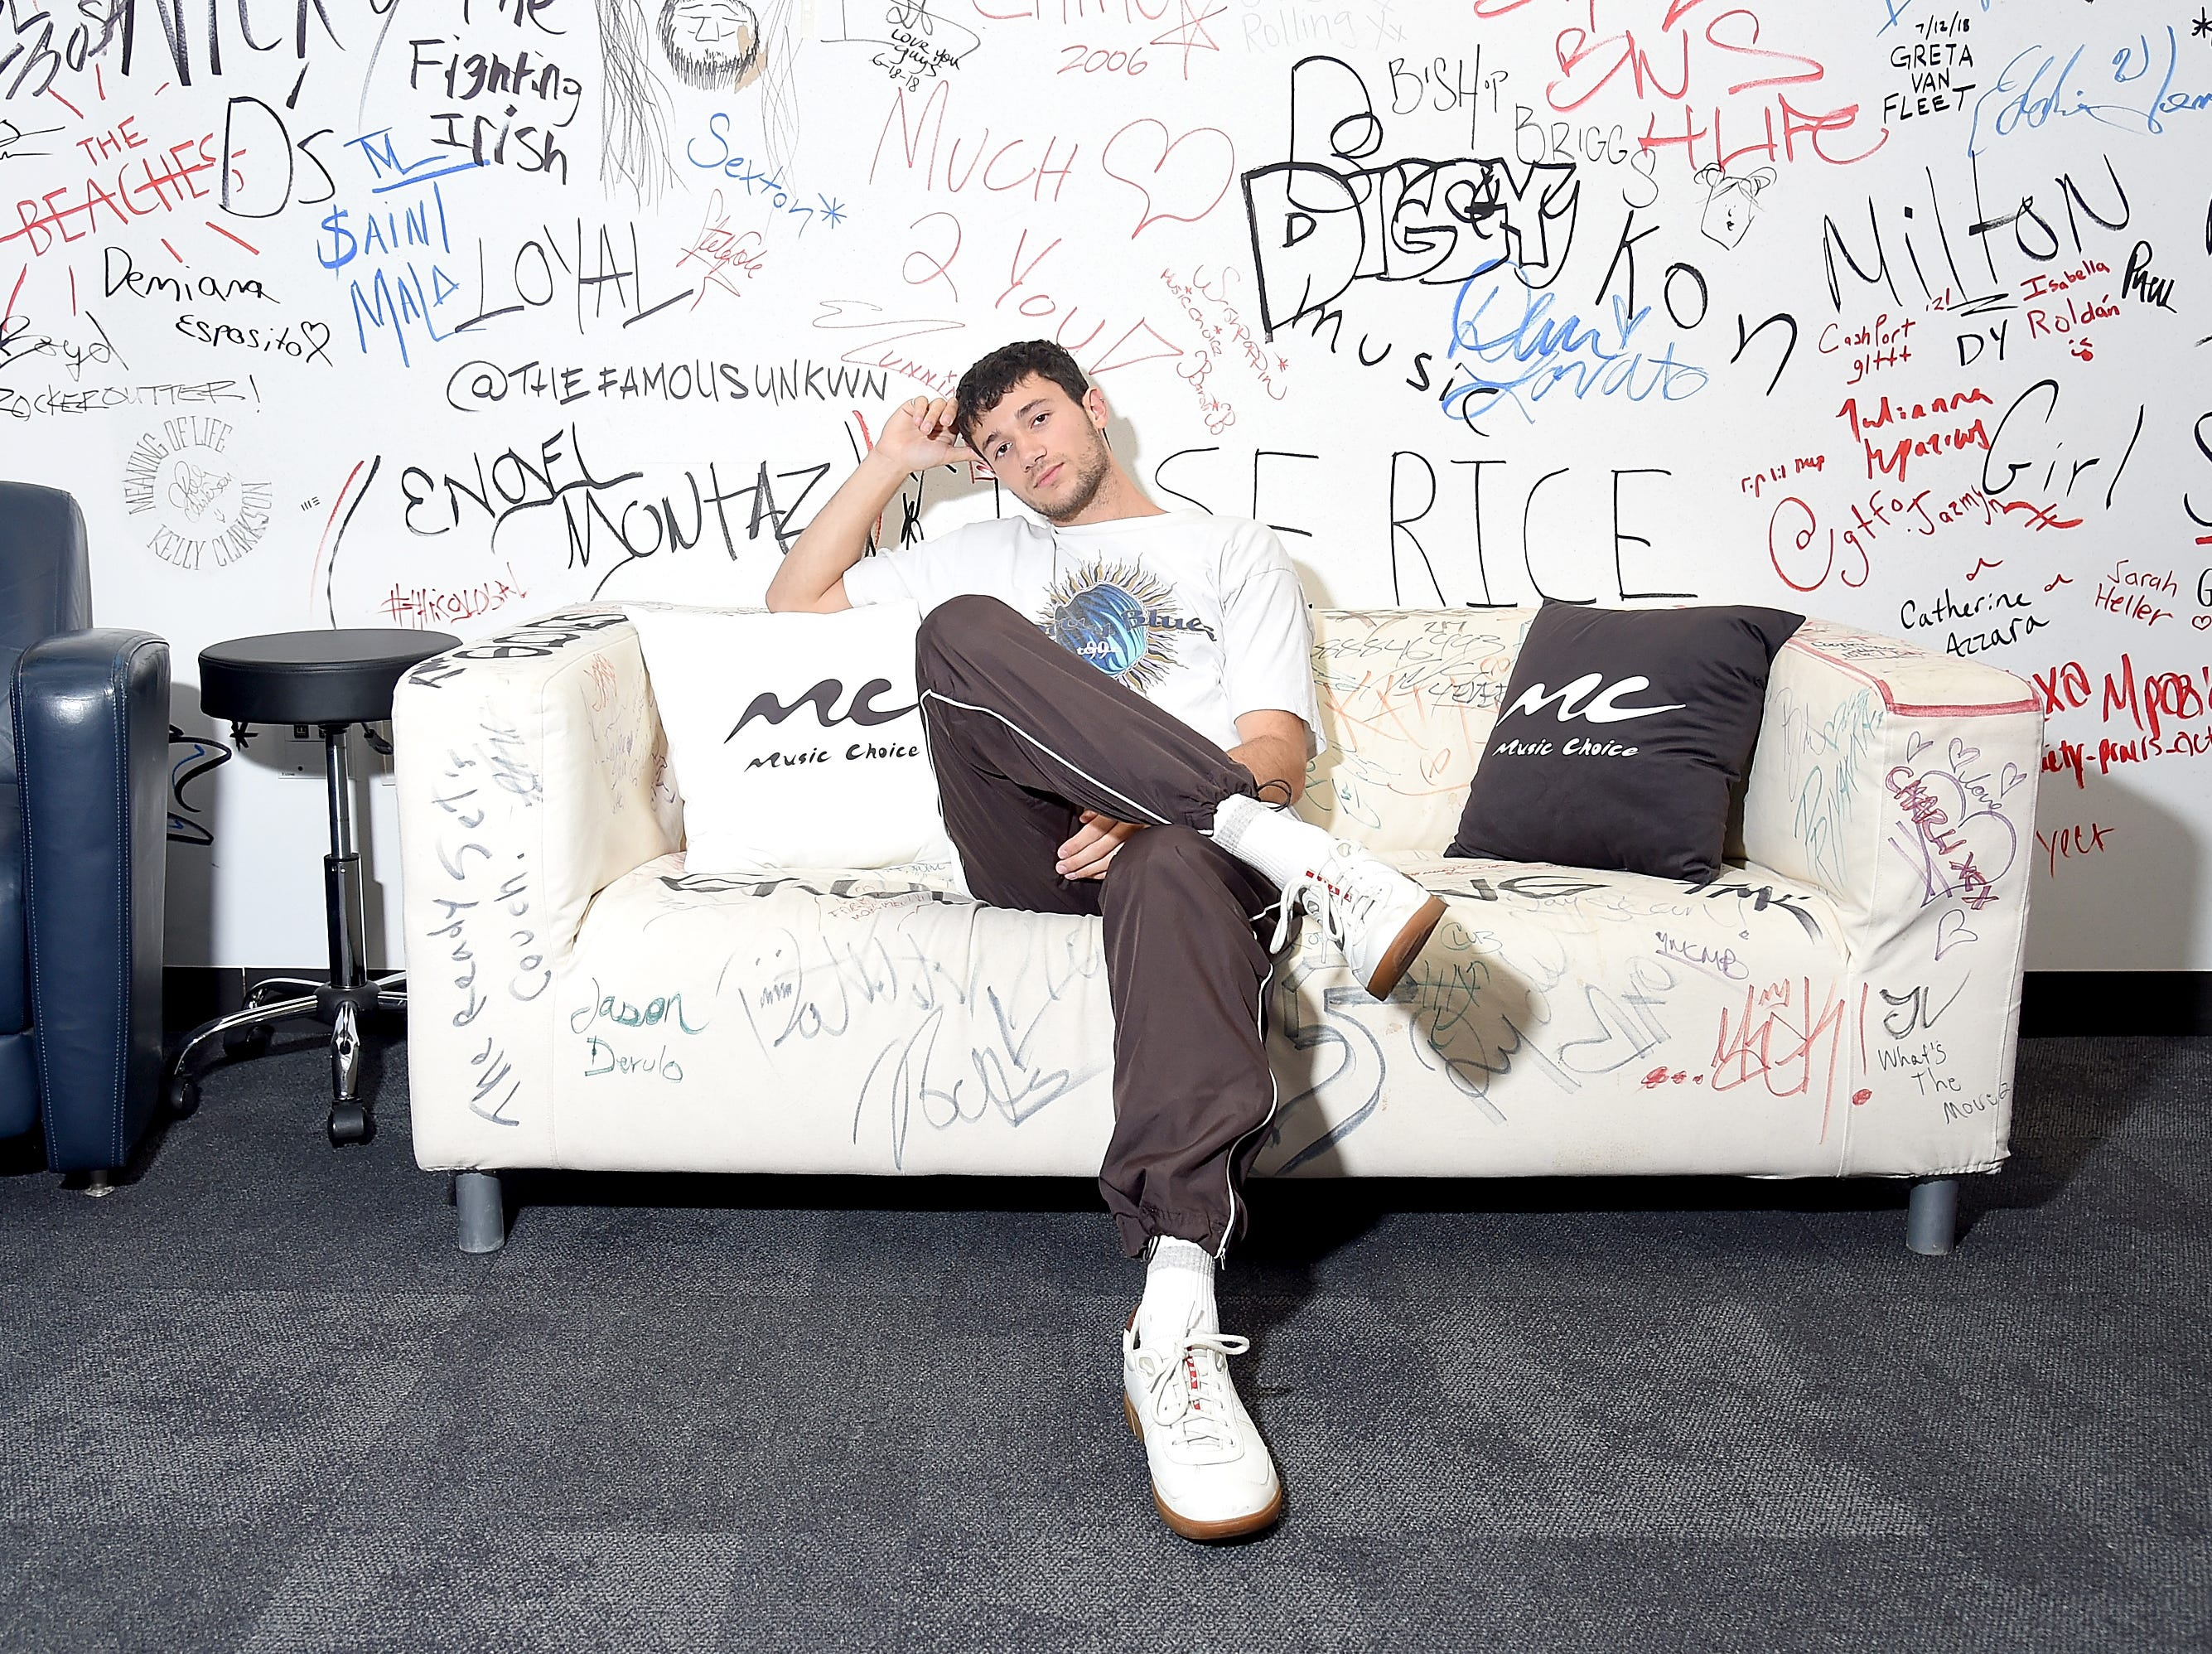 NEW YORK, NY - AUGUST 28:  Singer Jeremy Zucker visits Music Choice on August 28, 2018 in New York City.  (Photo by Michael Loccisano/Getty Images)